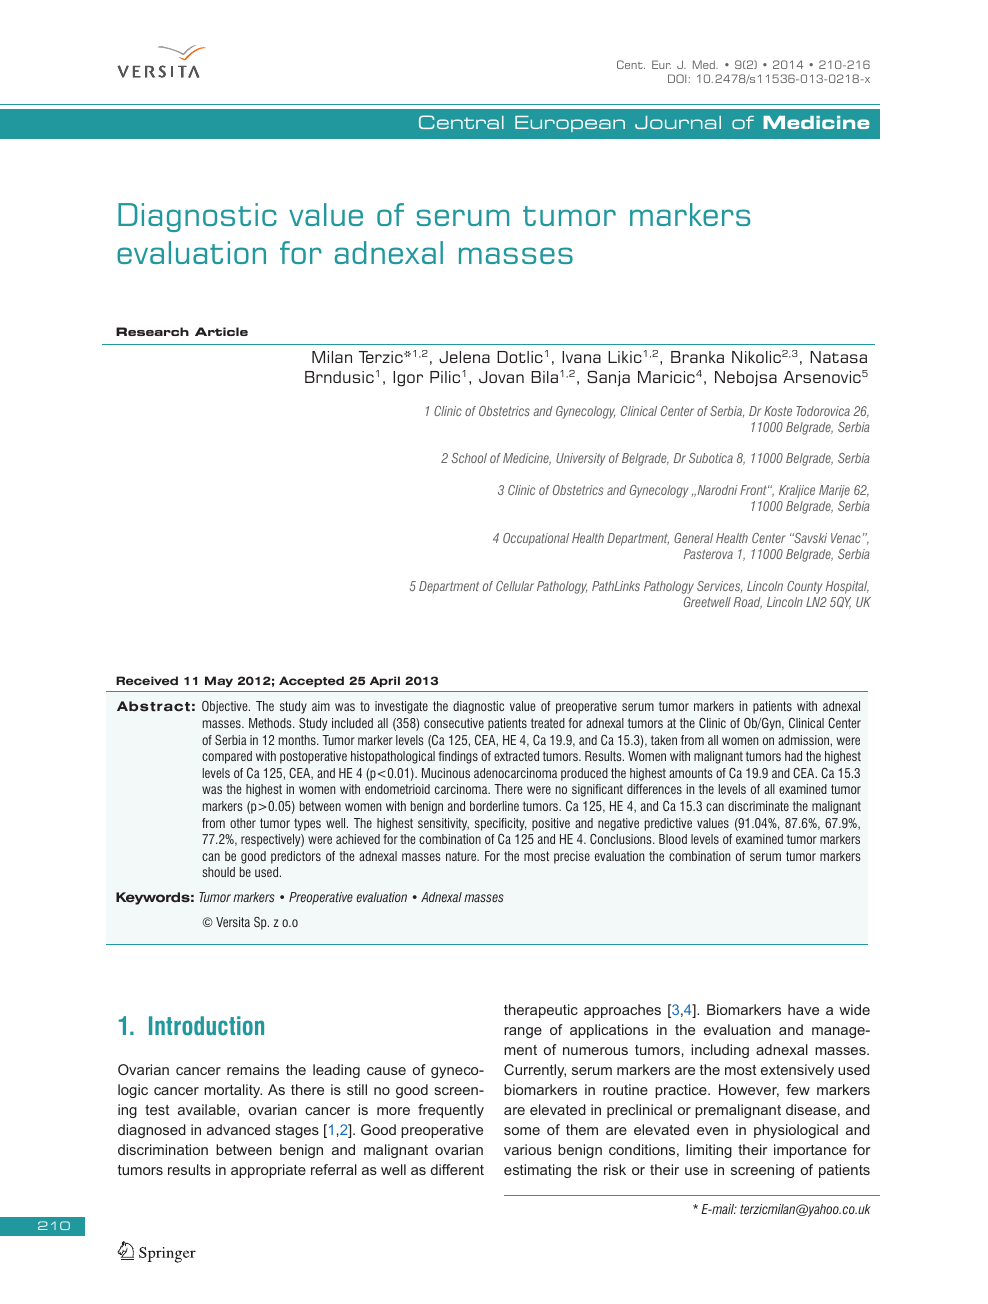 Diagnostic Value Of Serum Tumor Markers Evaluation For Adnexal